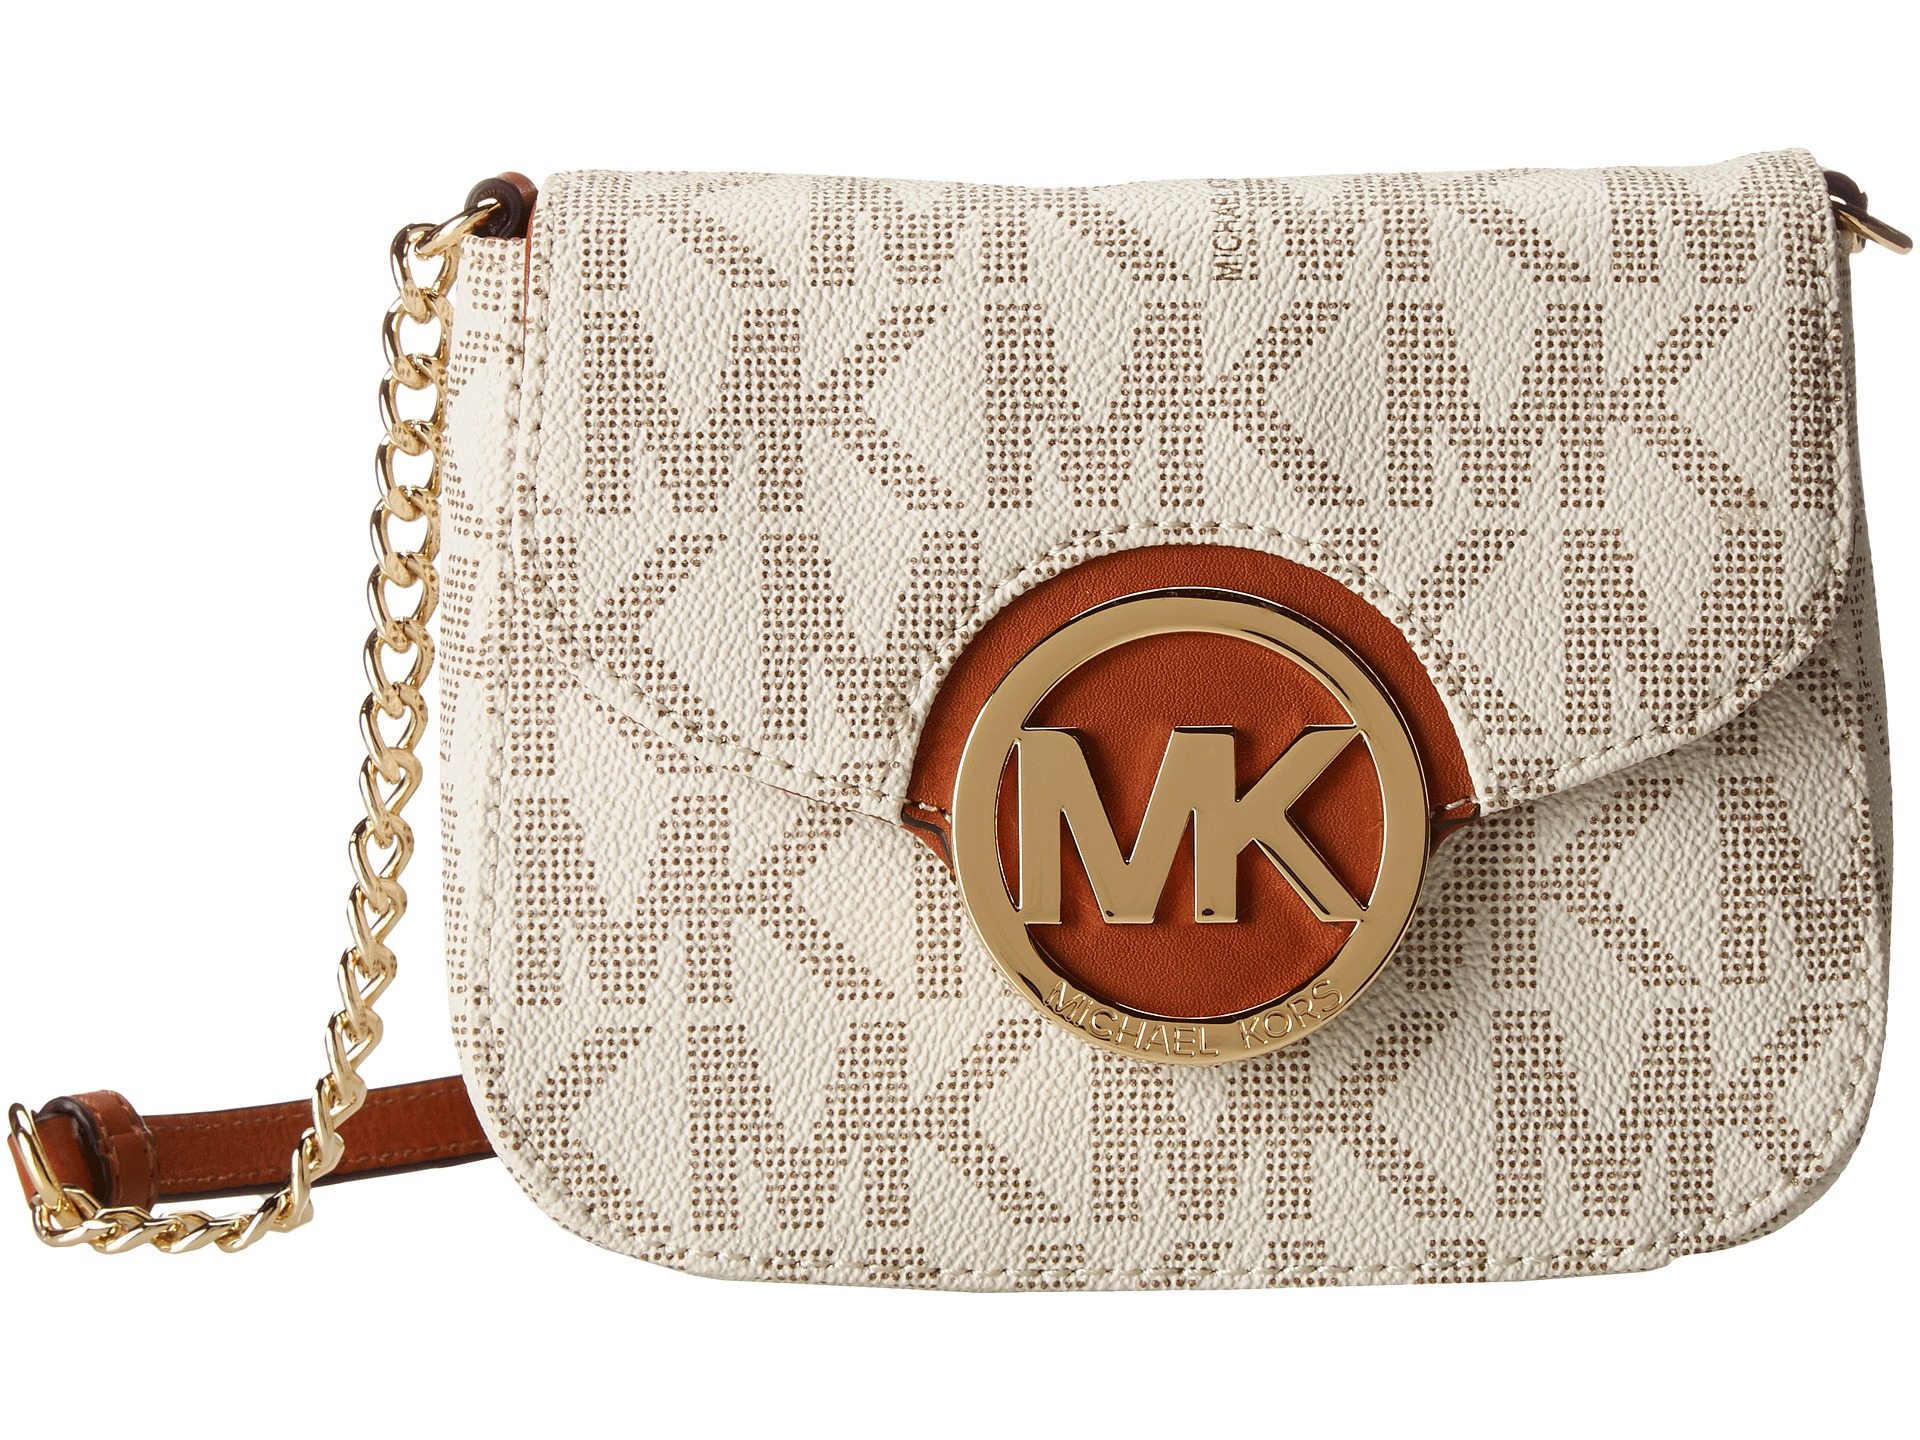 a61826a17b1d Gallery. Previously sold at: Zappos · Women's Michael By Michael Kors Fulton